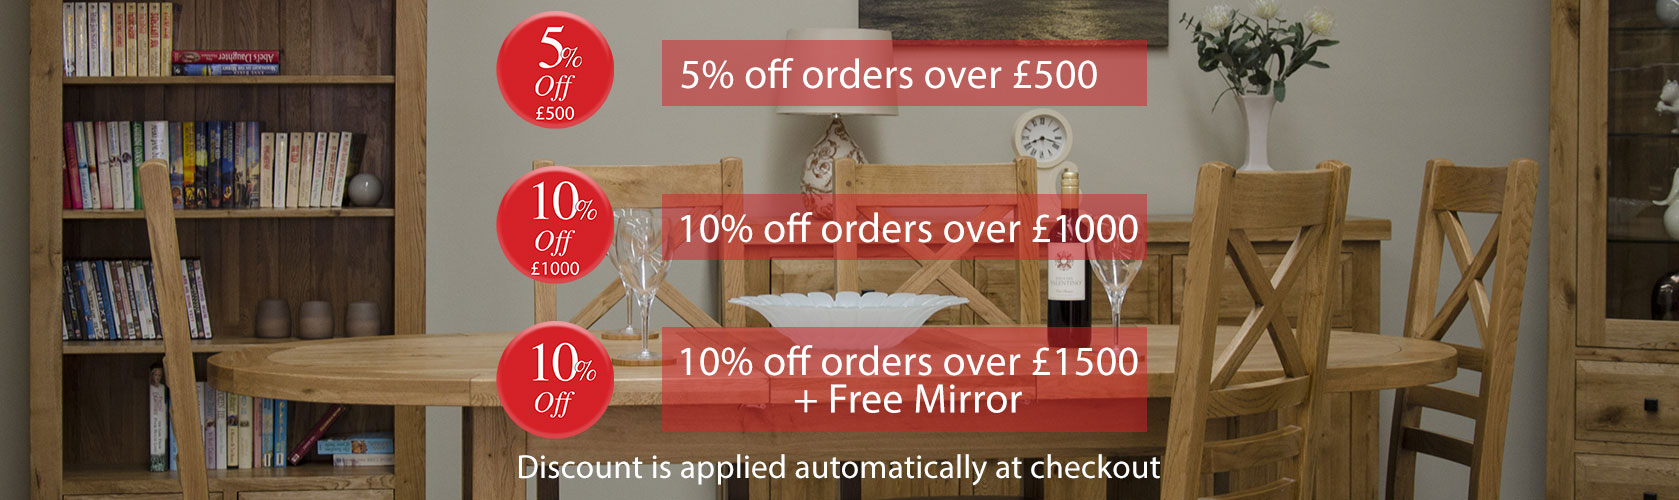 House of Oak - Special Offer